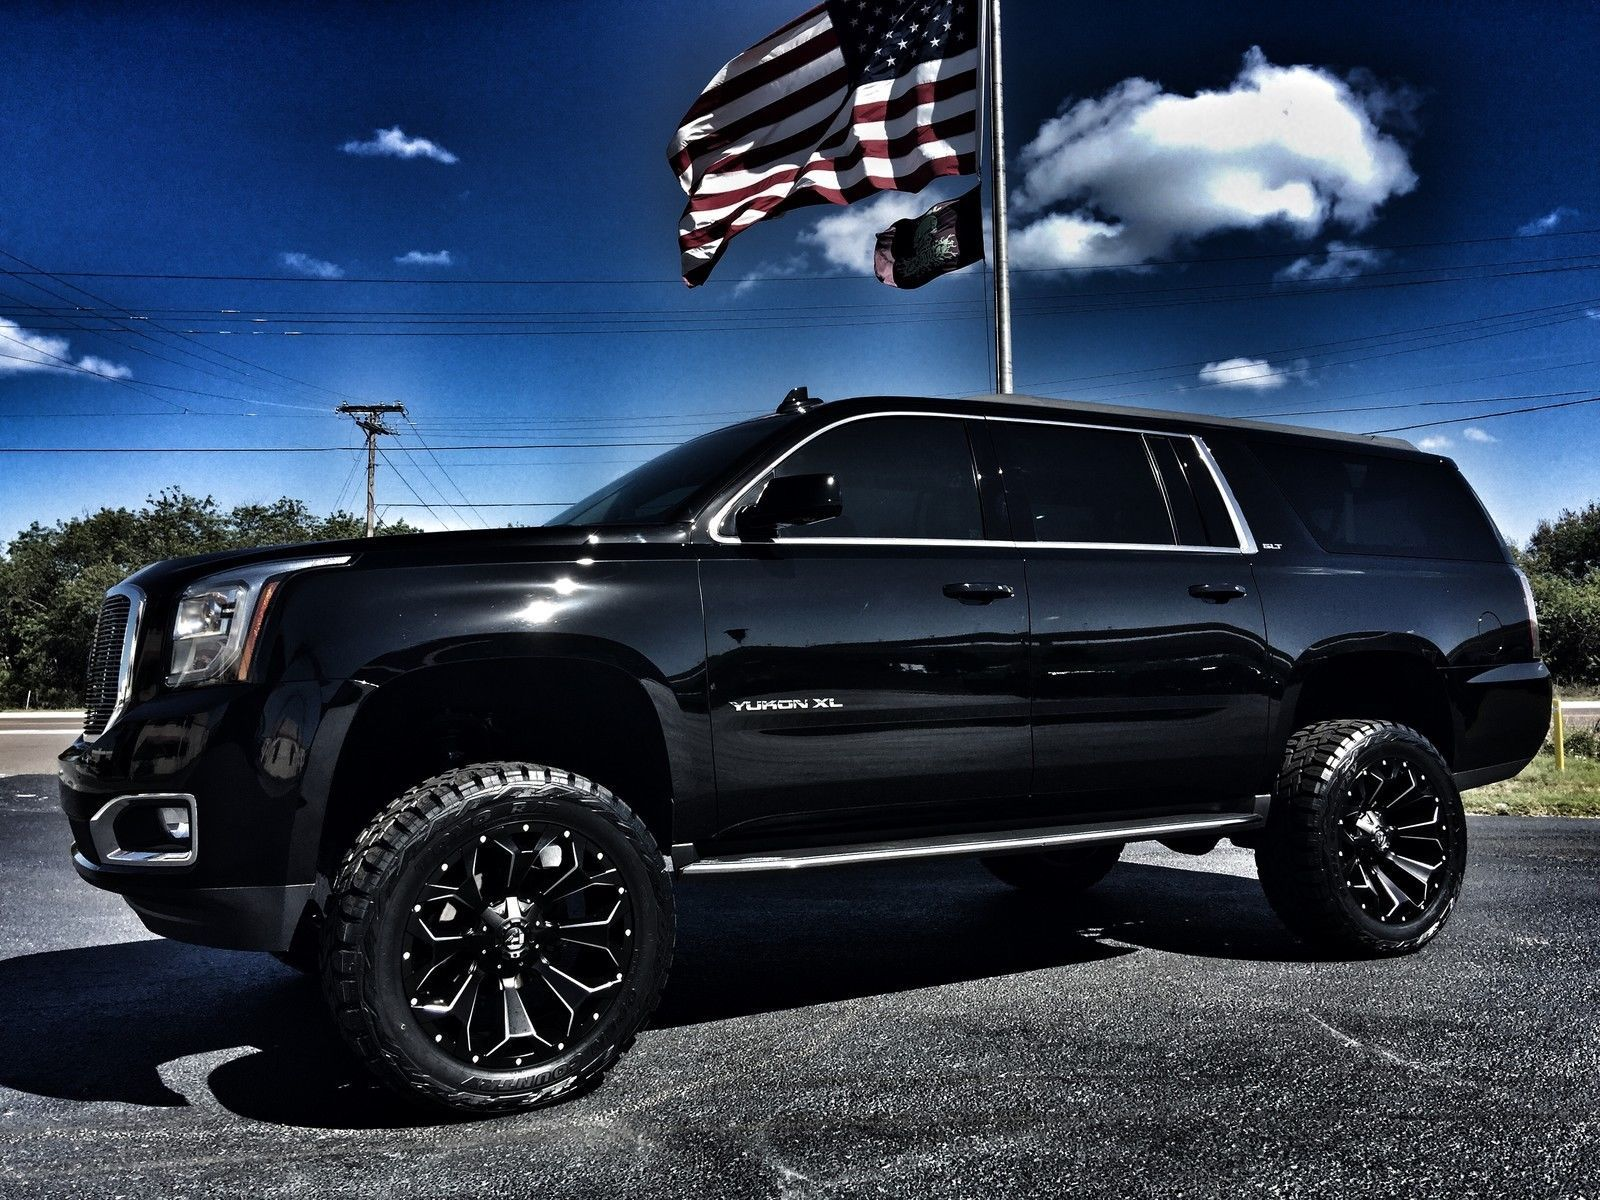 2016 Gmc Yukon Black Custom Lifted Slt 22 Fuel Ebay Truck